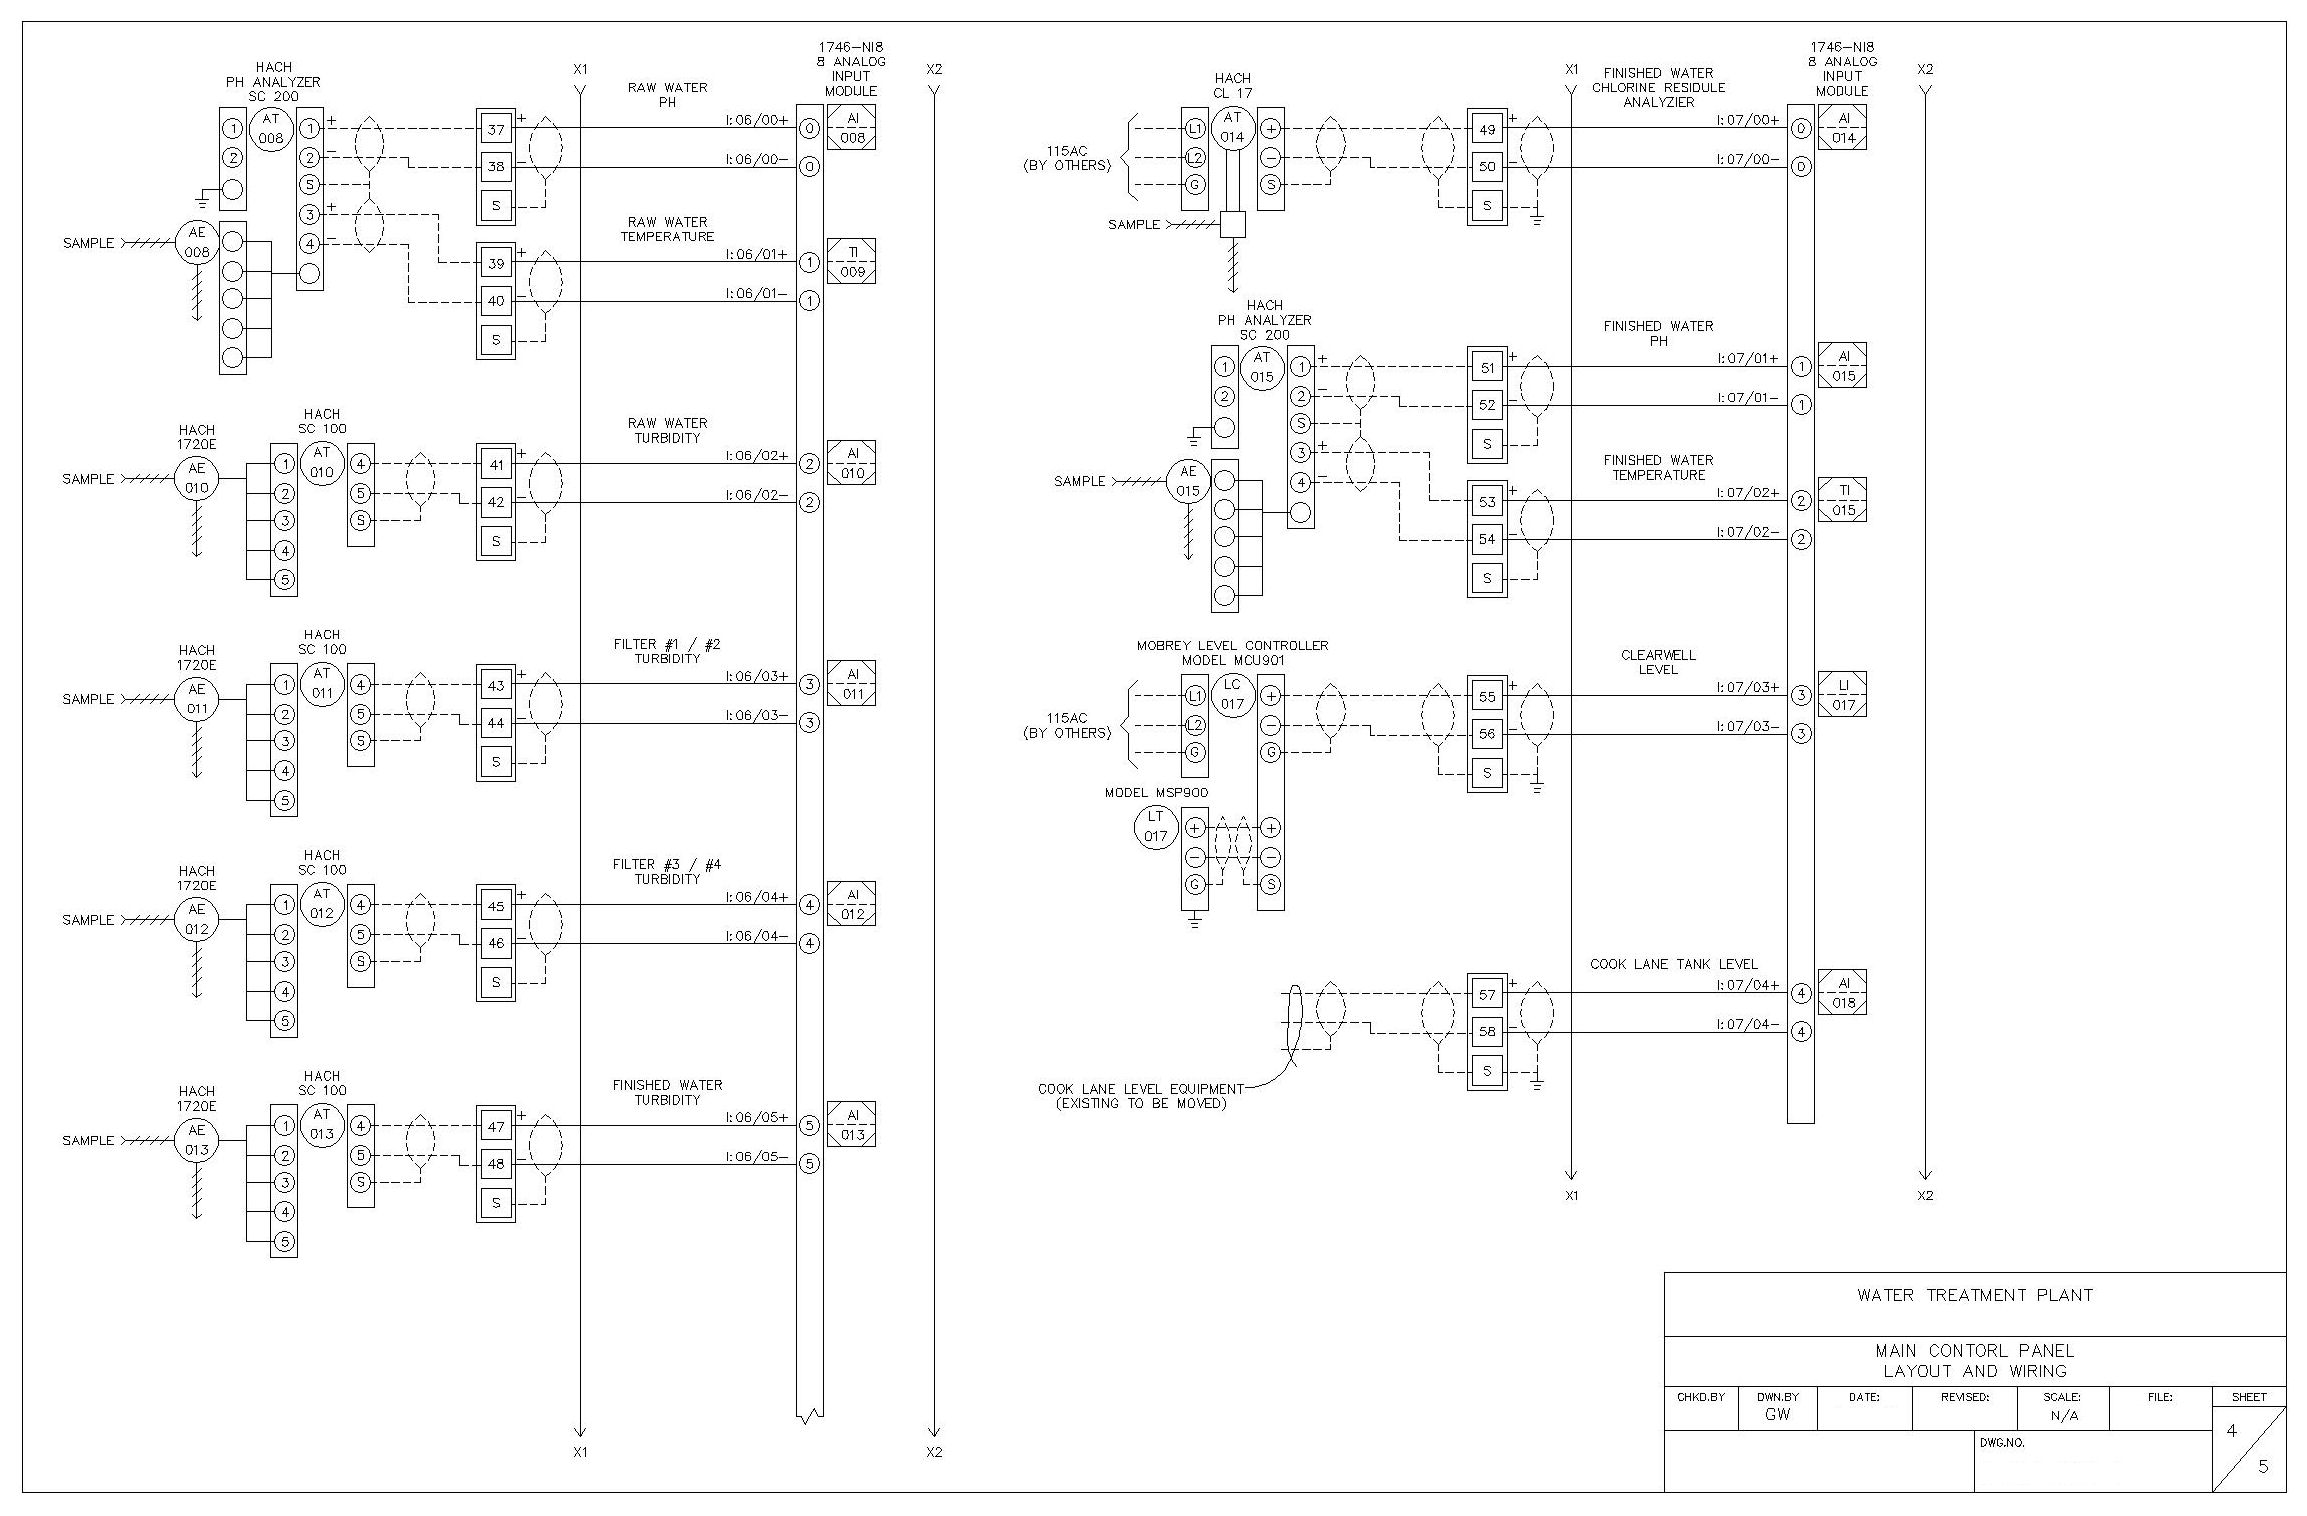 Electrical Riser Diagrams images